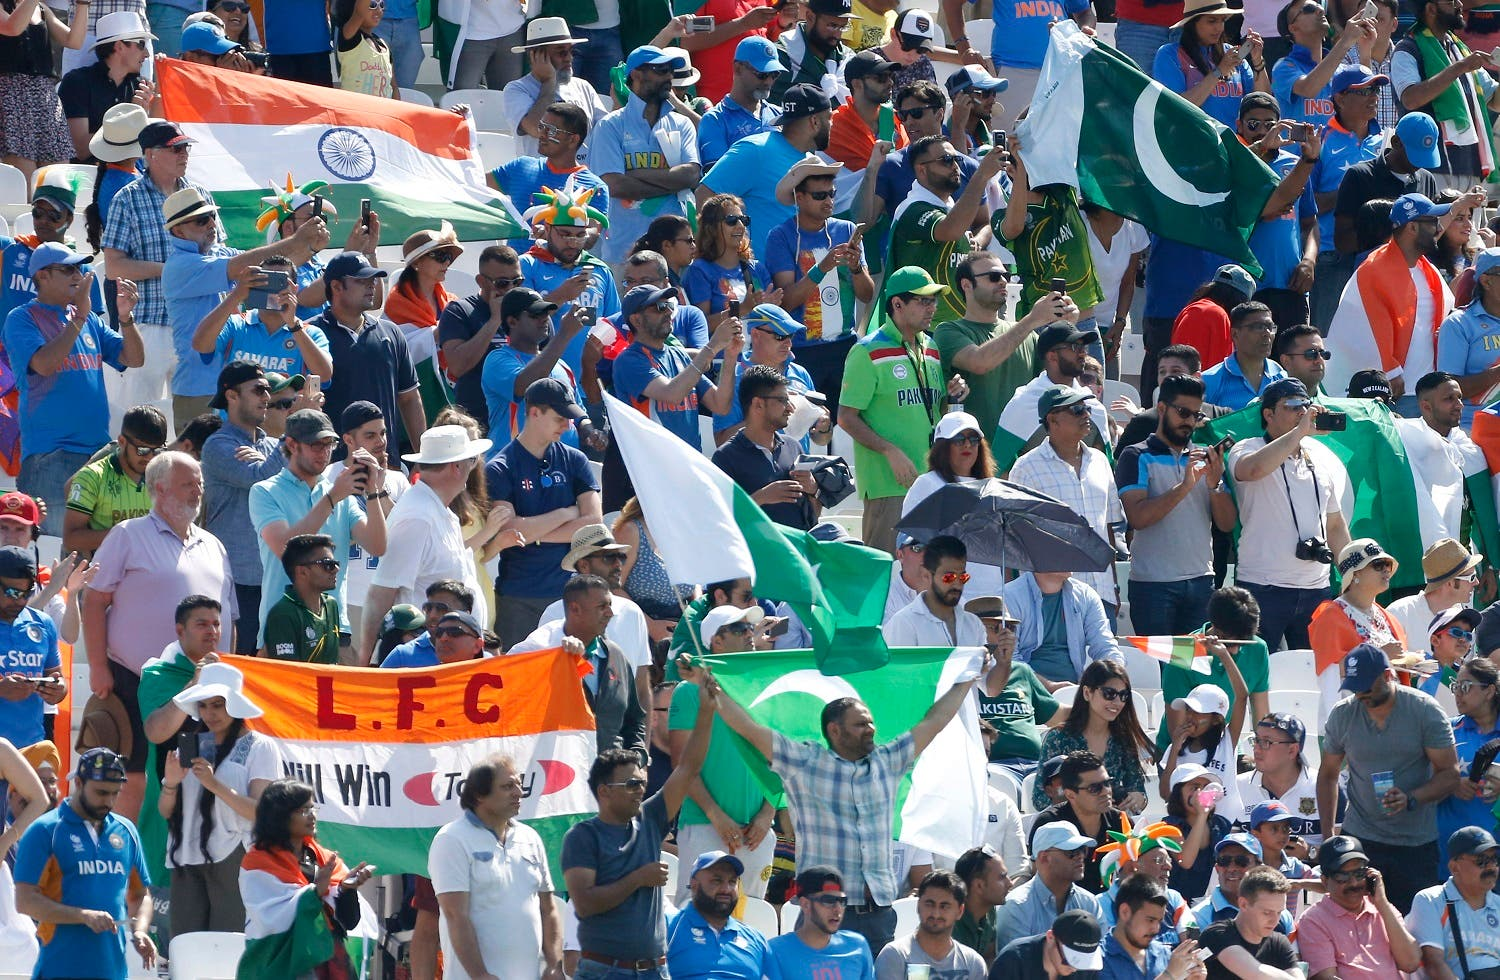 Cricket fans pack the stands at The Oval in the UK for the India-Pakistan 2017 ICC Champions Trophy Final on June 18, 2017. (Reuters)